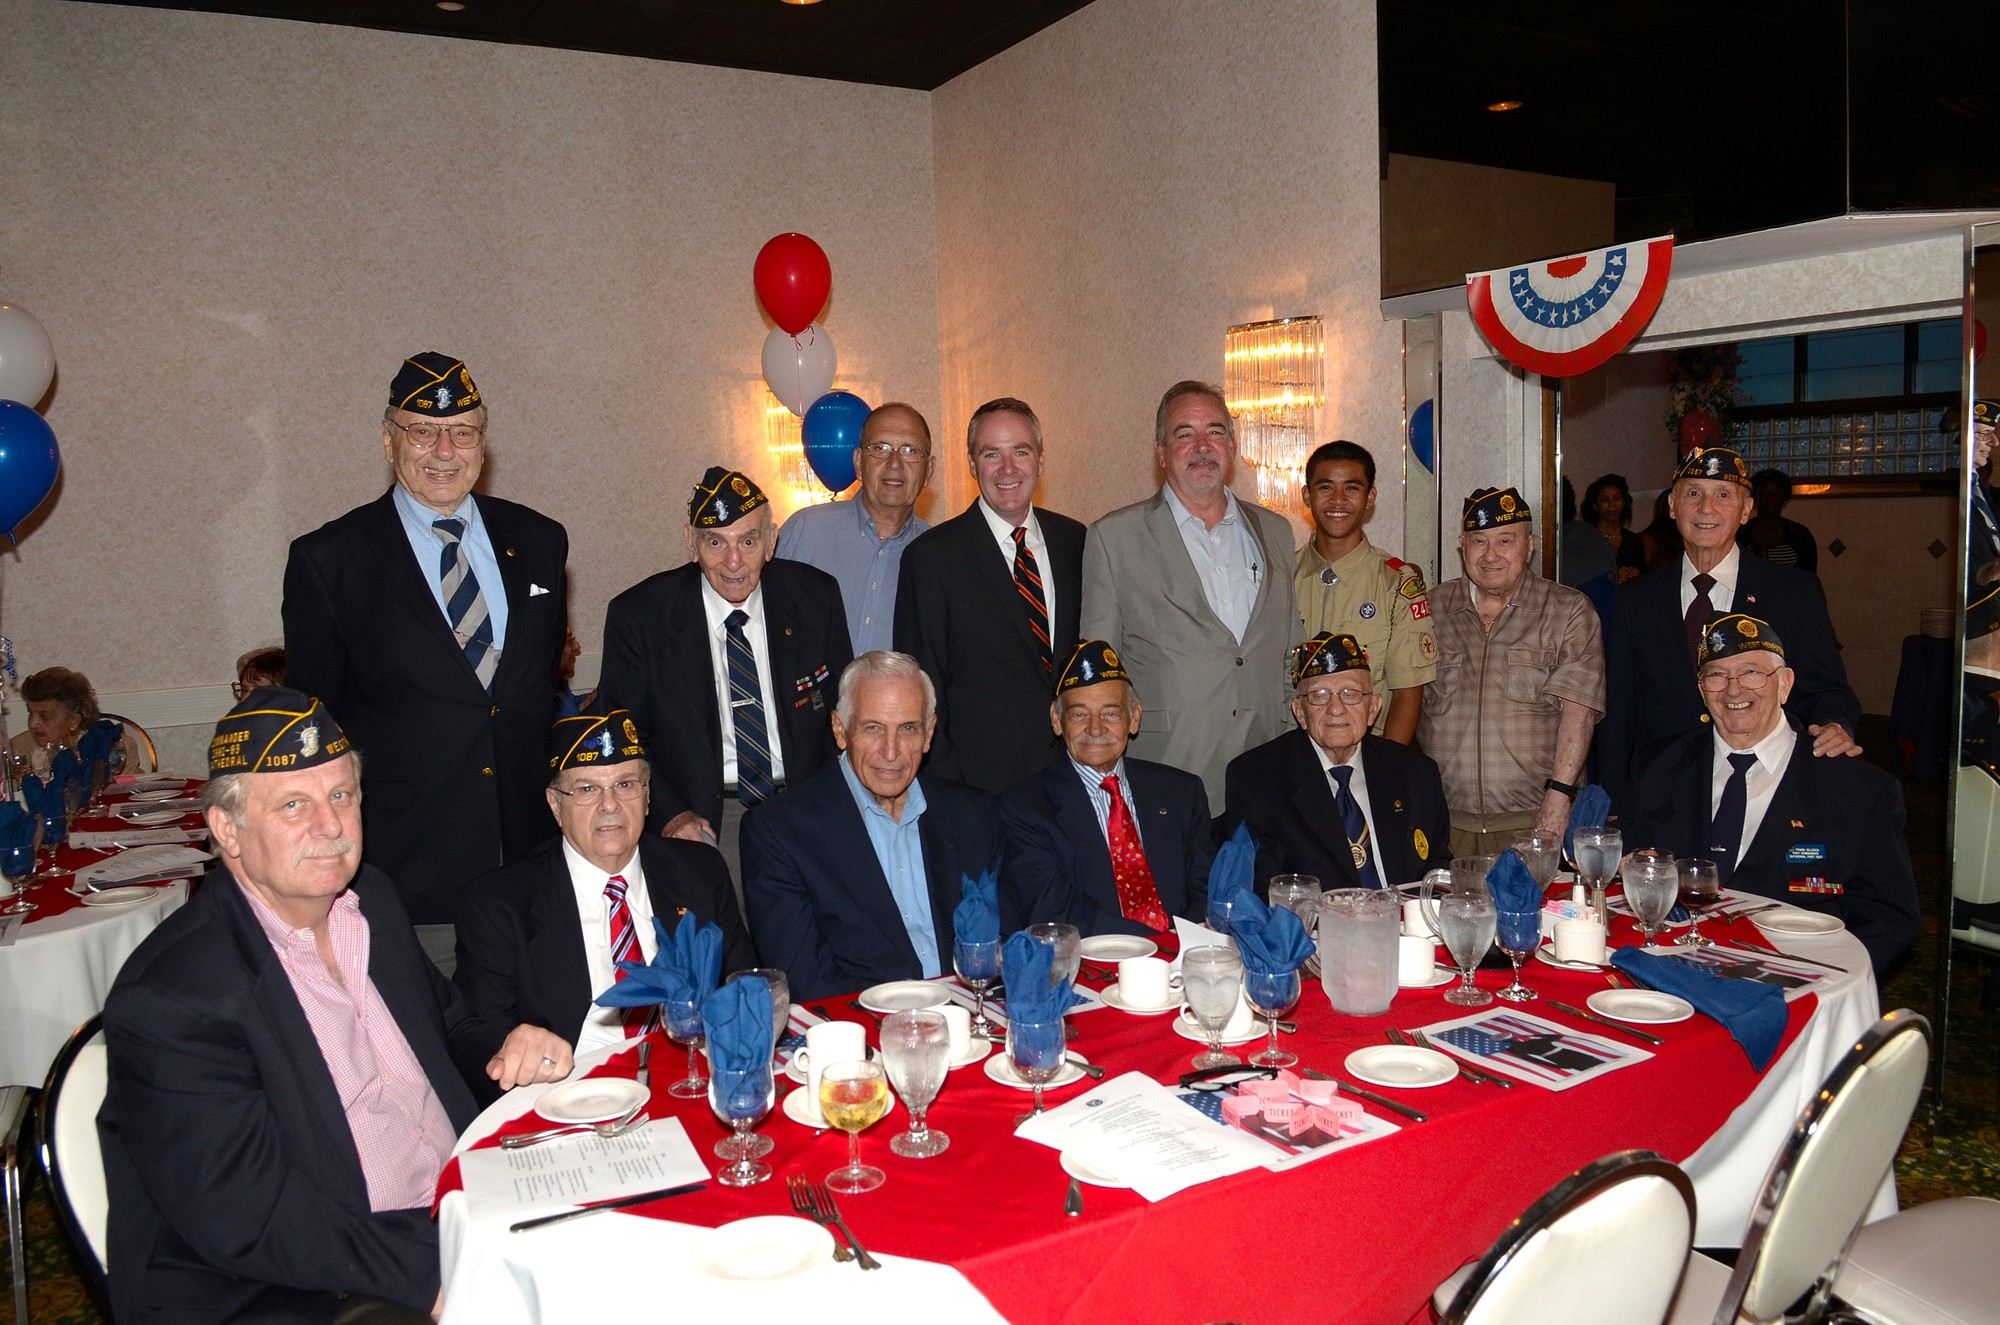 Hempstead Town Receiver of Taxes Don Clavin, fourth from left, standing, back row, with American Legion Post #1087 Commander Edward Giacin, West Hempstead Kiwanis President George Silks, Louis Siciliano, Frank Celenza, Emedio Torre, Cristopher Gabayan, Paul Bonfiglio, John Shaud, Charles Forzano, Richard Daig, Jim Witter and Mike Guerriero.